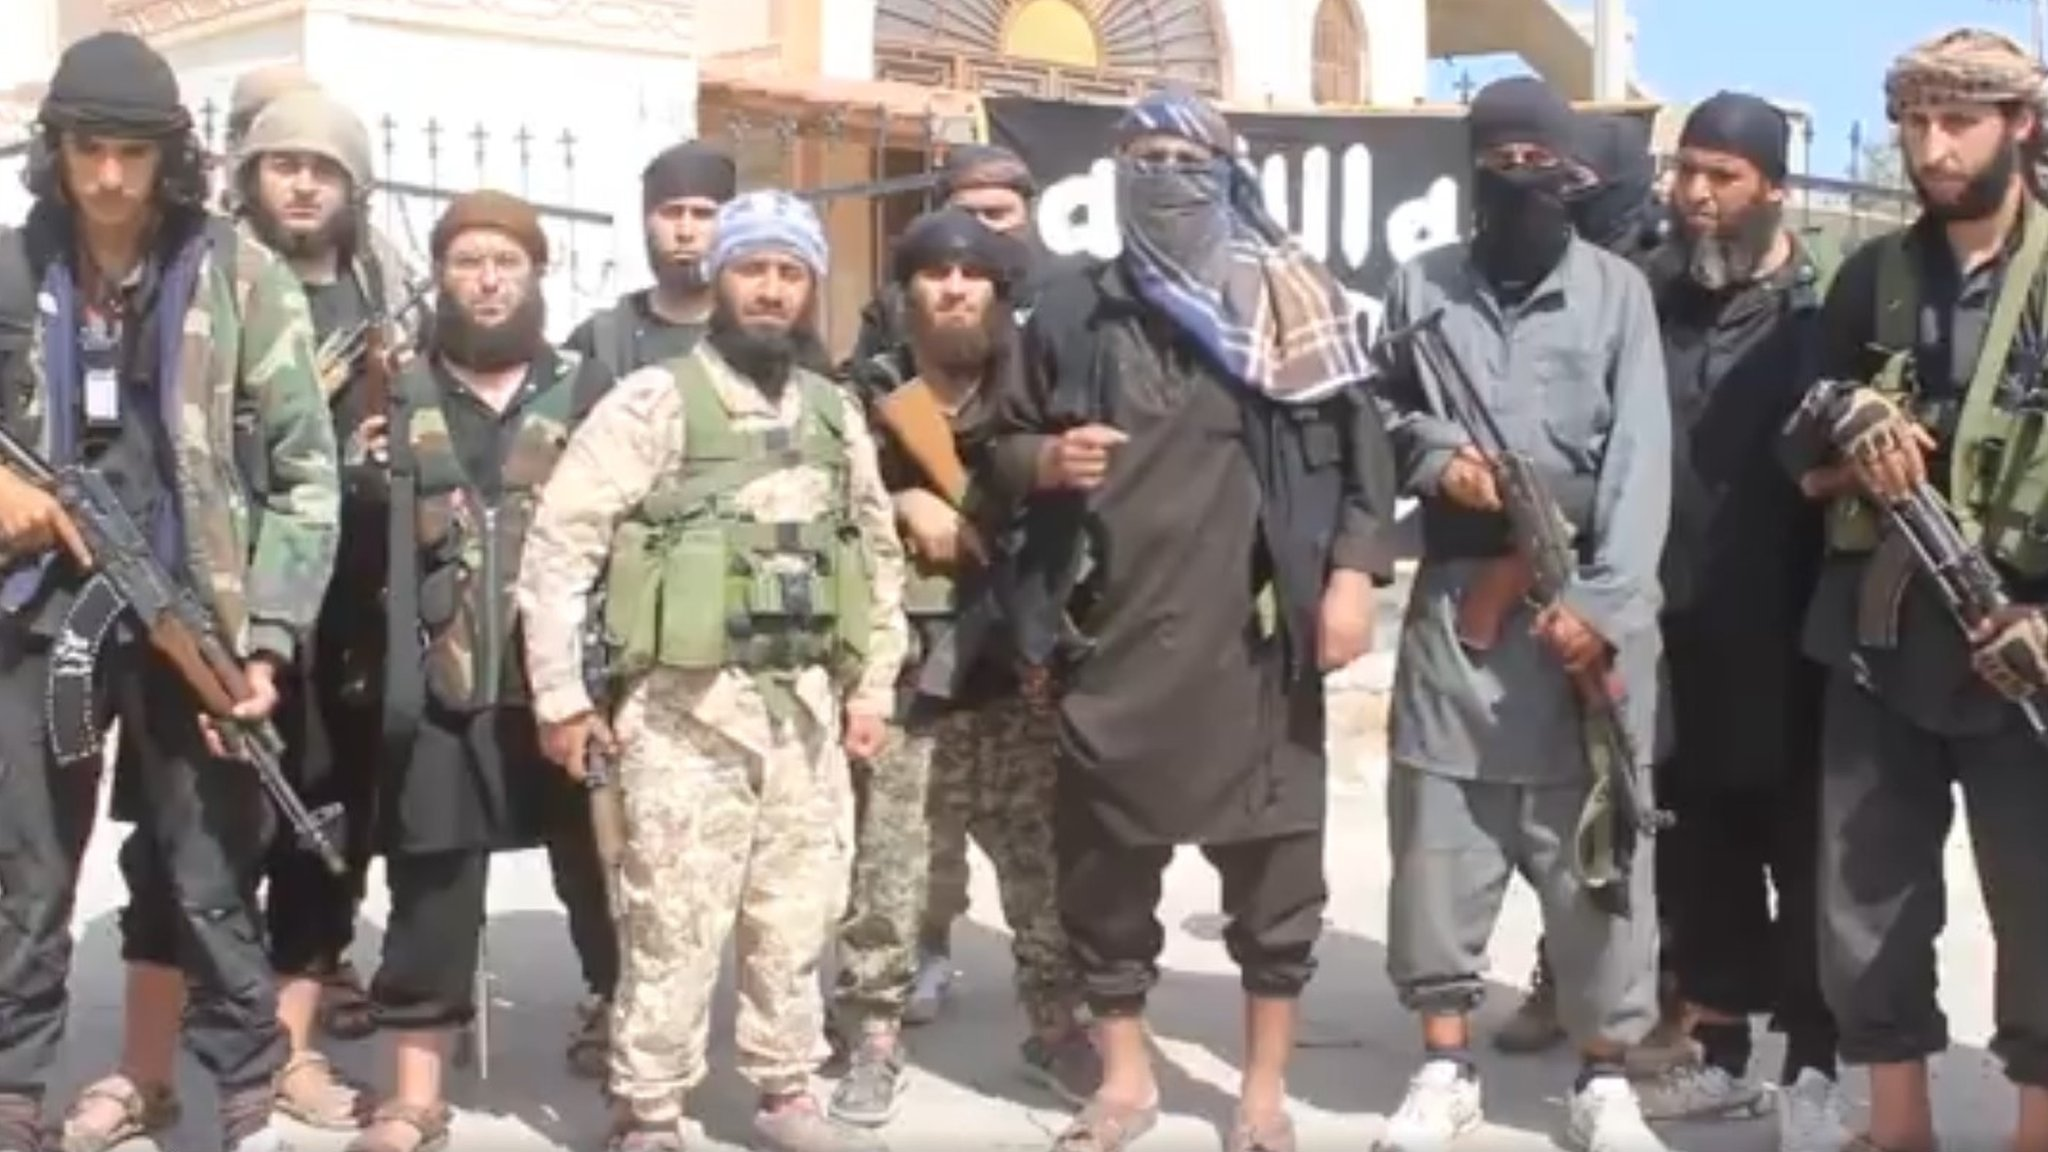 IS conflict: Up to 30,000 fighters in Syria and Iraq - UN